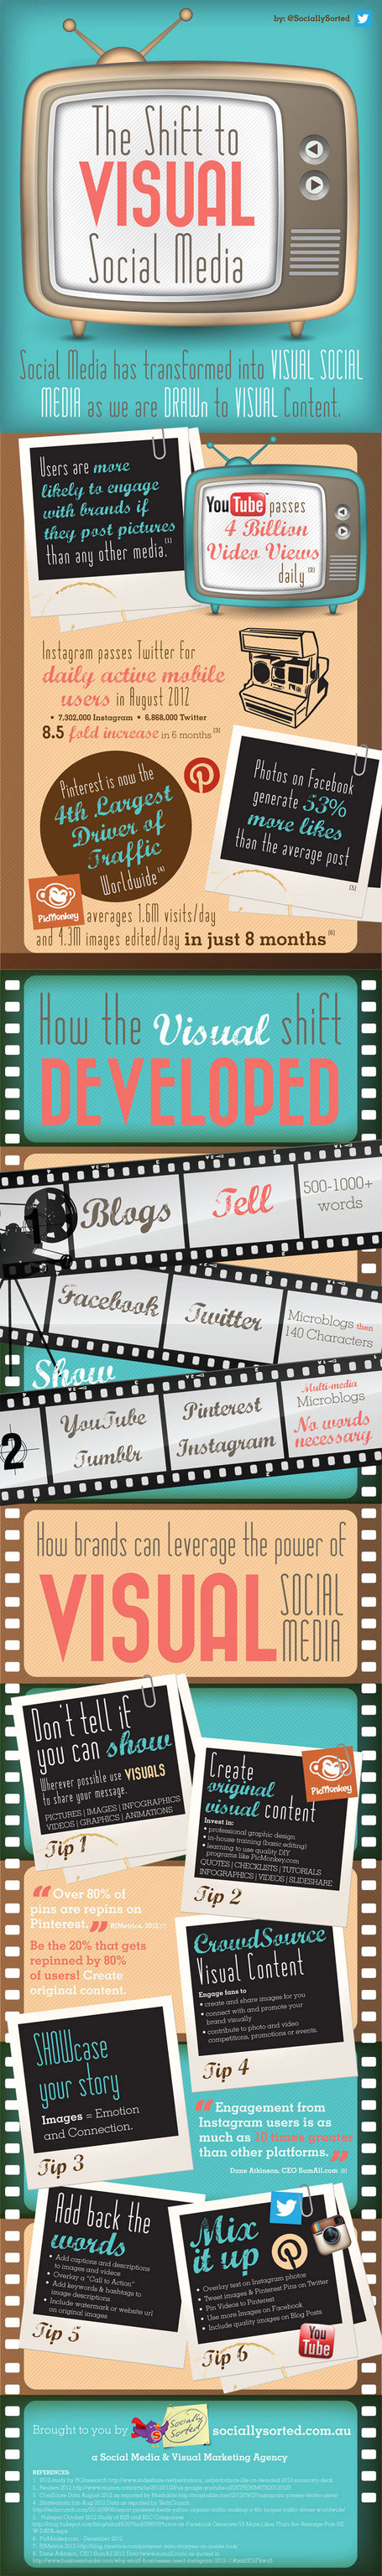 Imagery in Social Media  & How to Leverage Visual Content [infographic] | Wallet Digital - Social Media, Business & Technology | Scoop.it